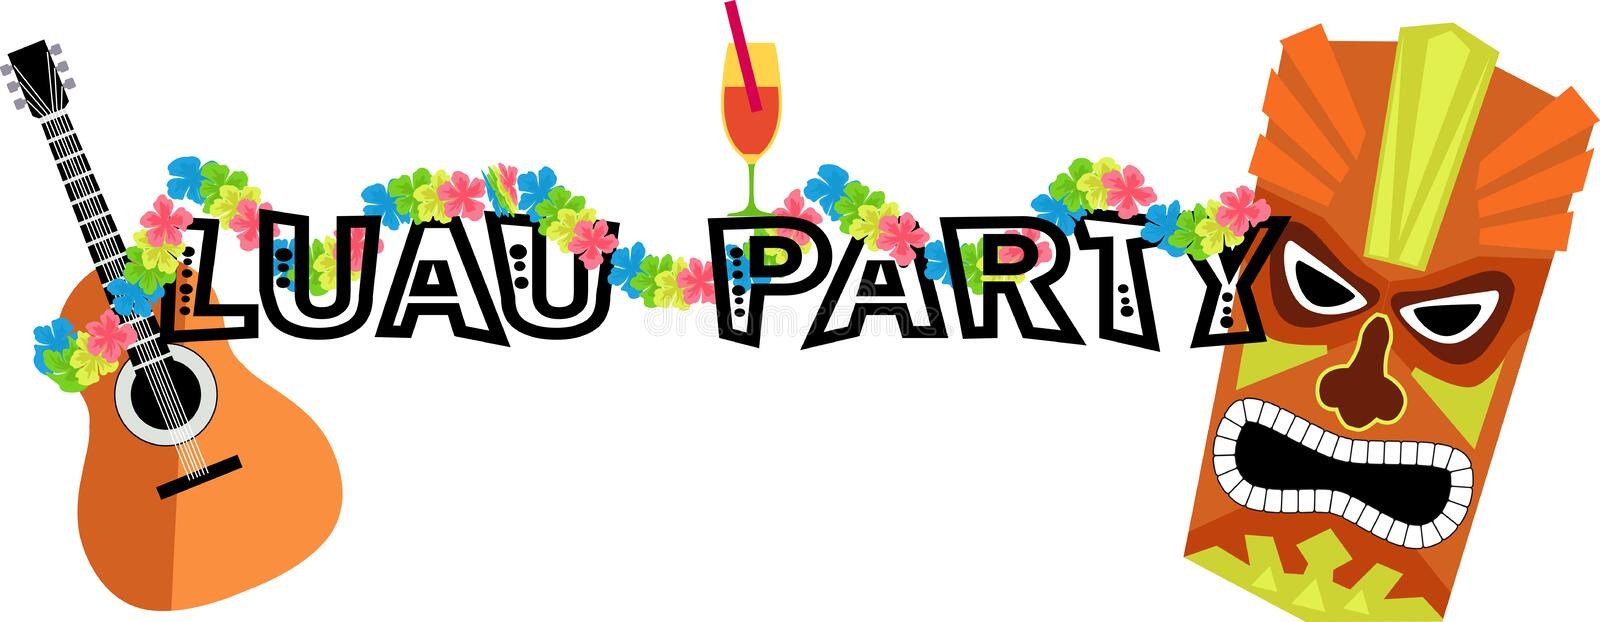 Luau Party Banner royalty free illustration